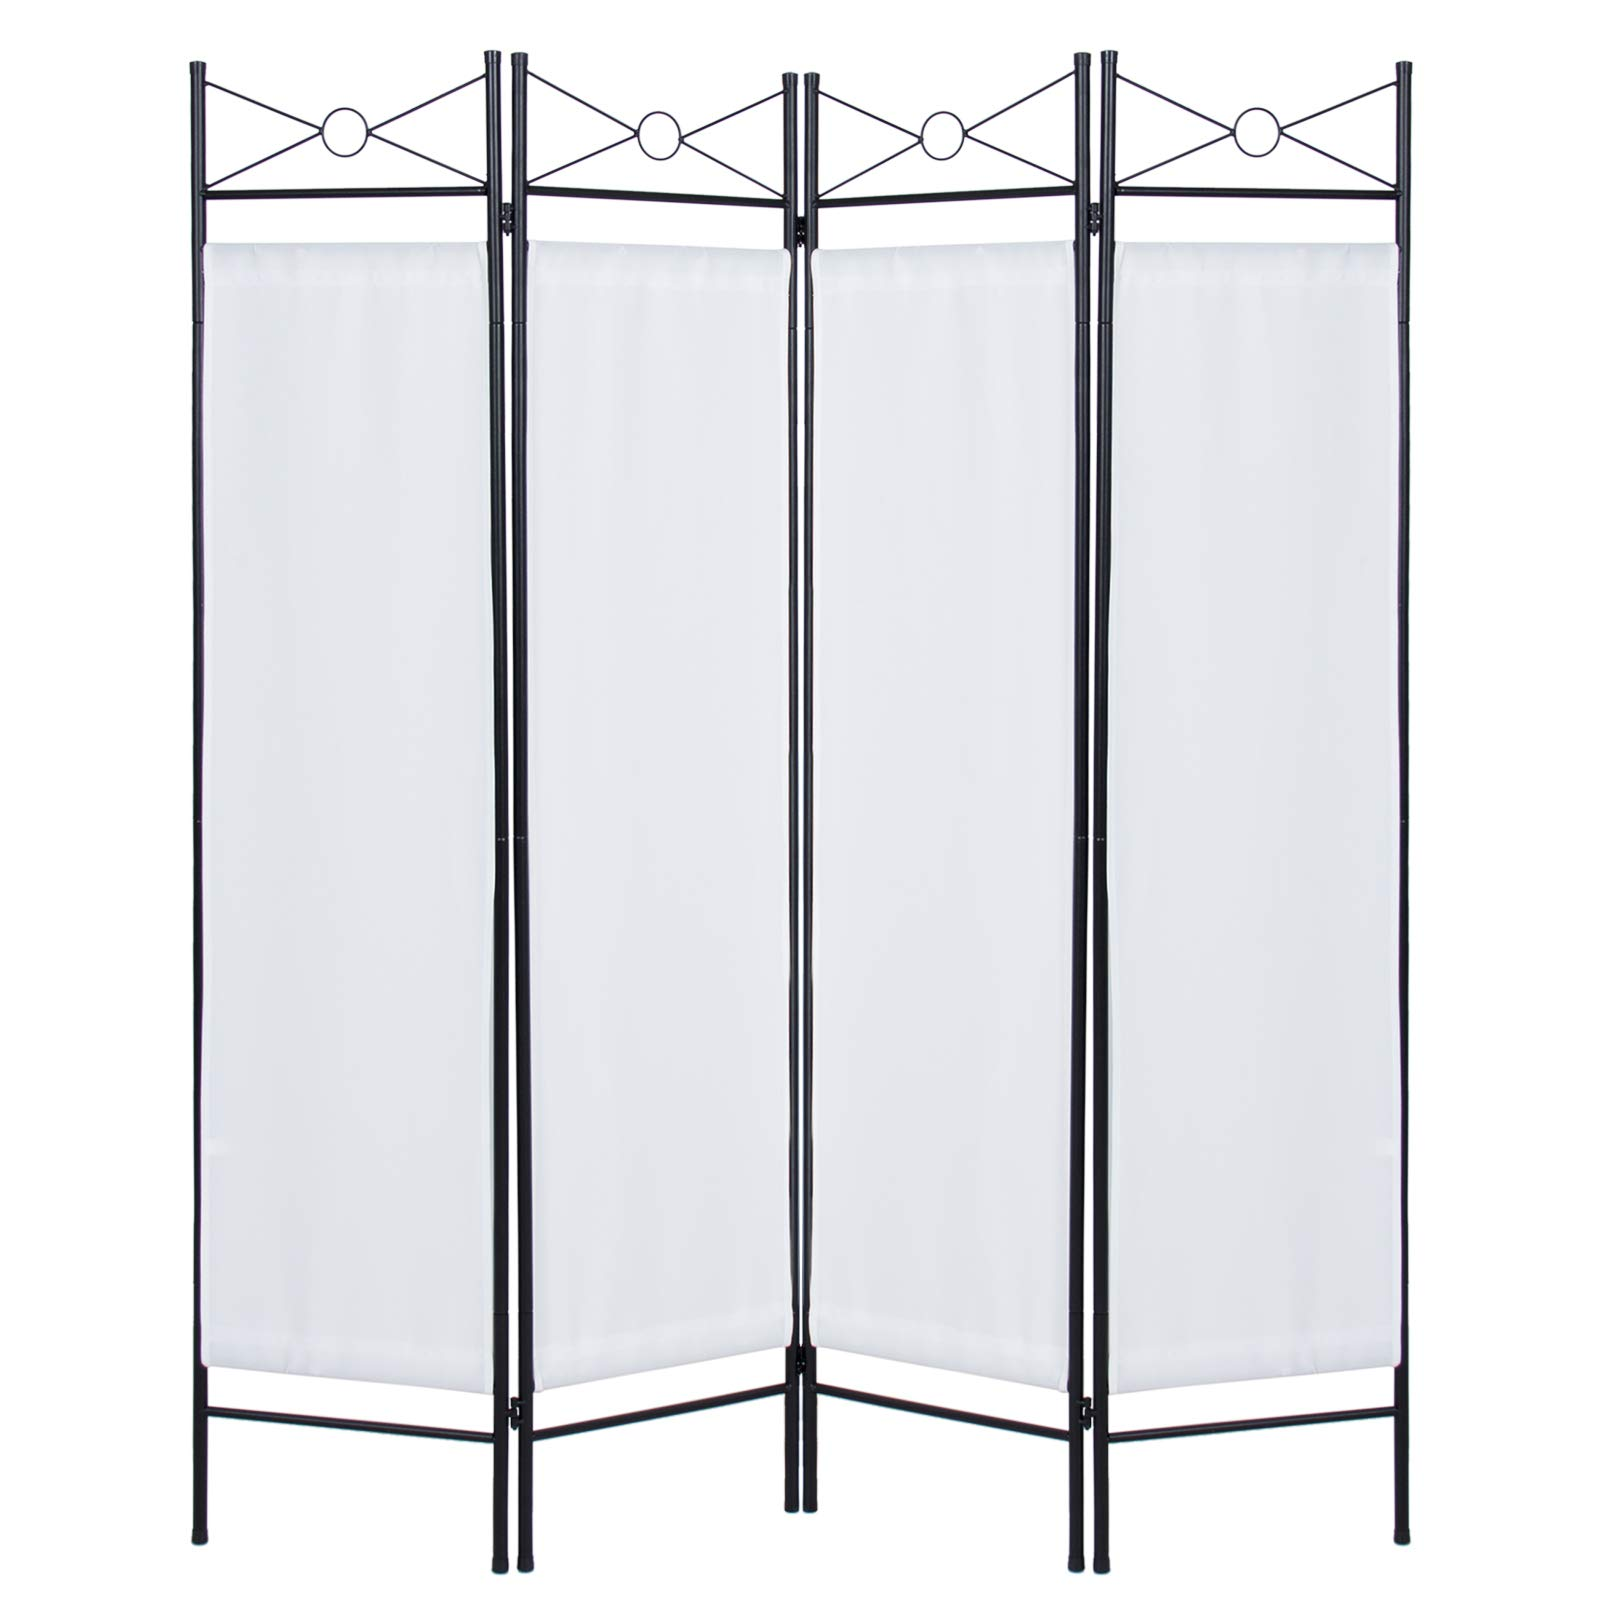 Best Choice Products Home Accents 4 Panel Room Divider, White by Best Choice Products